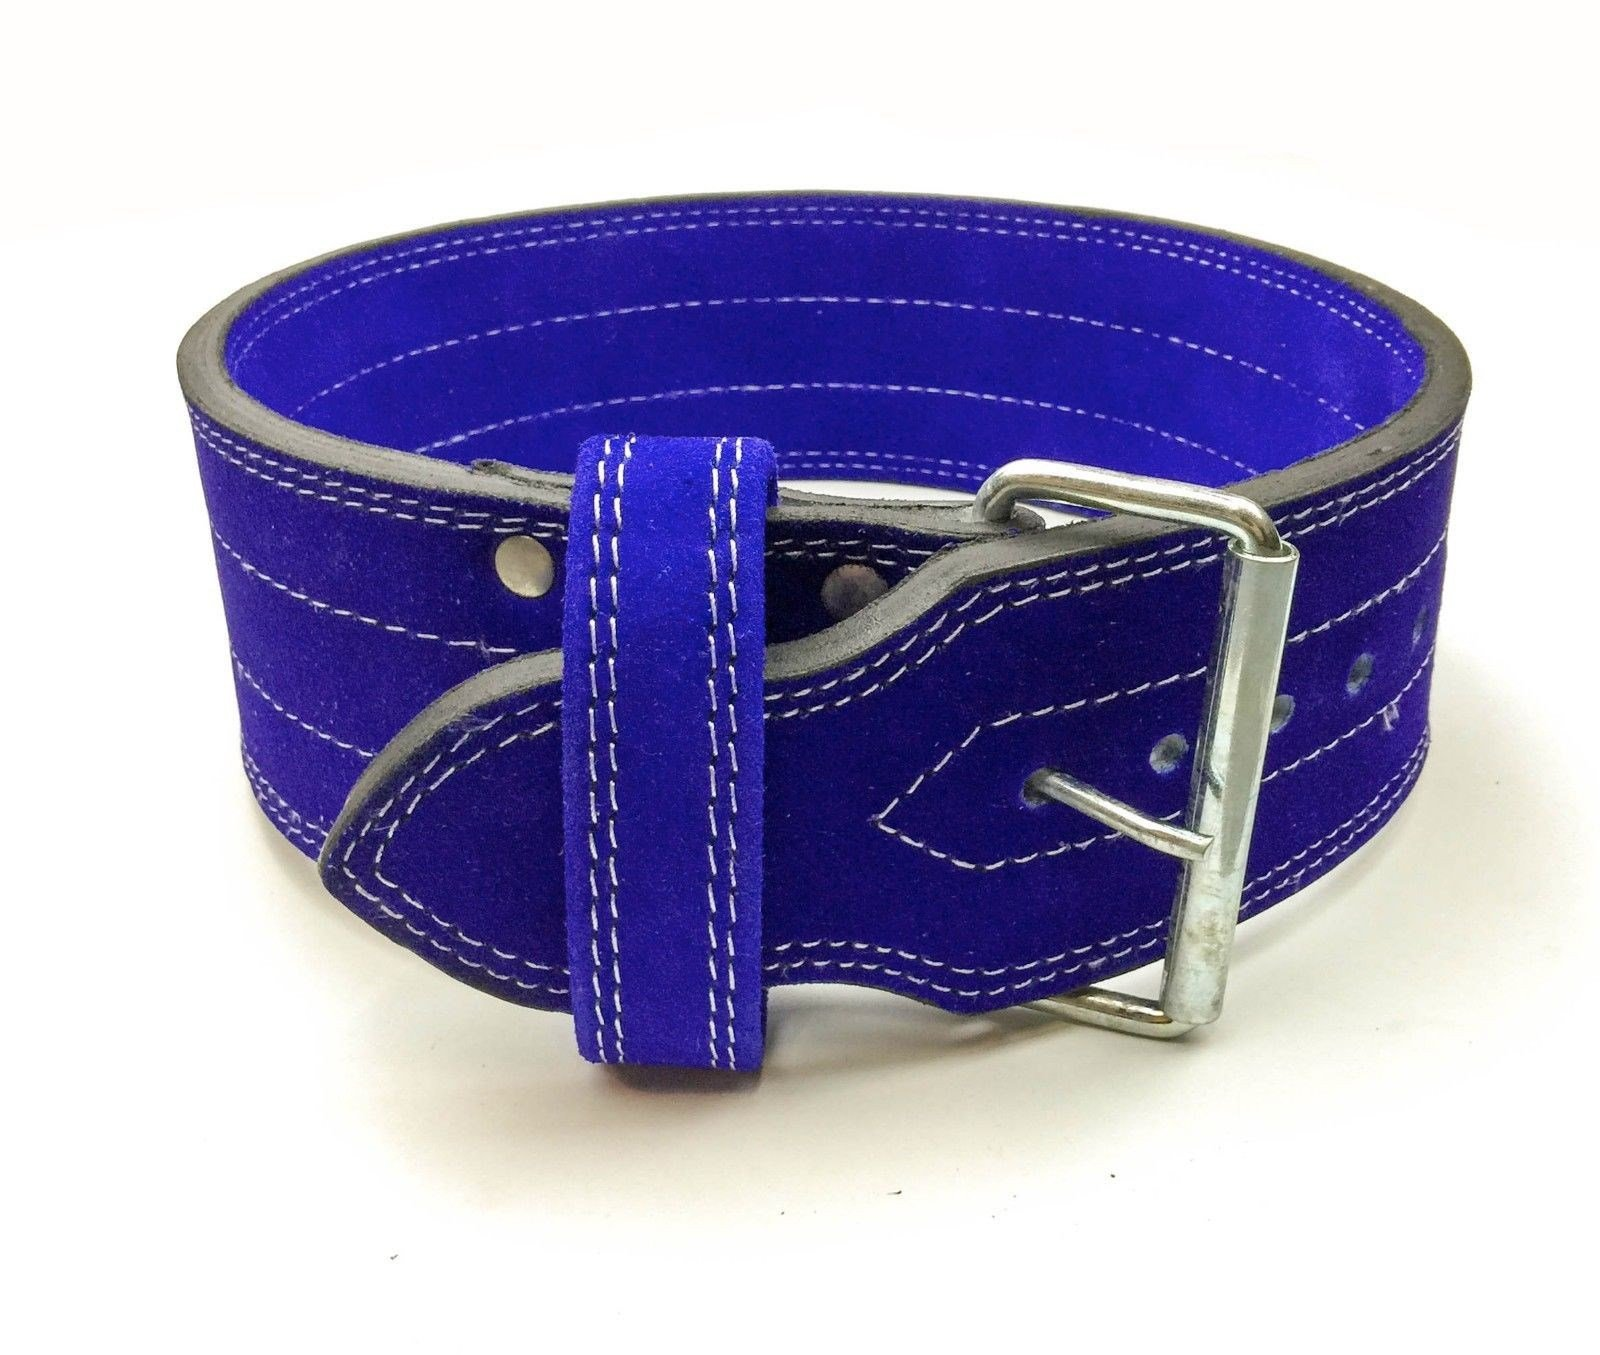 Flexz Fitness Single Prong Closure Powerlifting and Weightlifting Belt, 10mm, Blue, Size Small